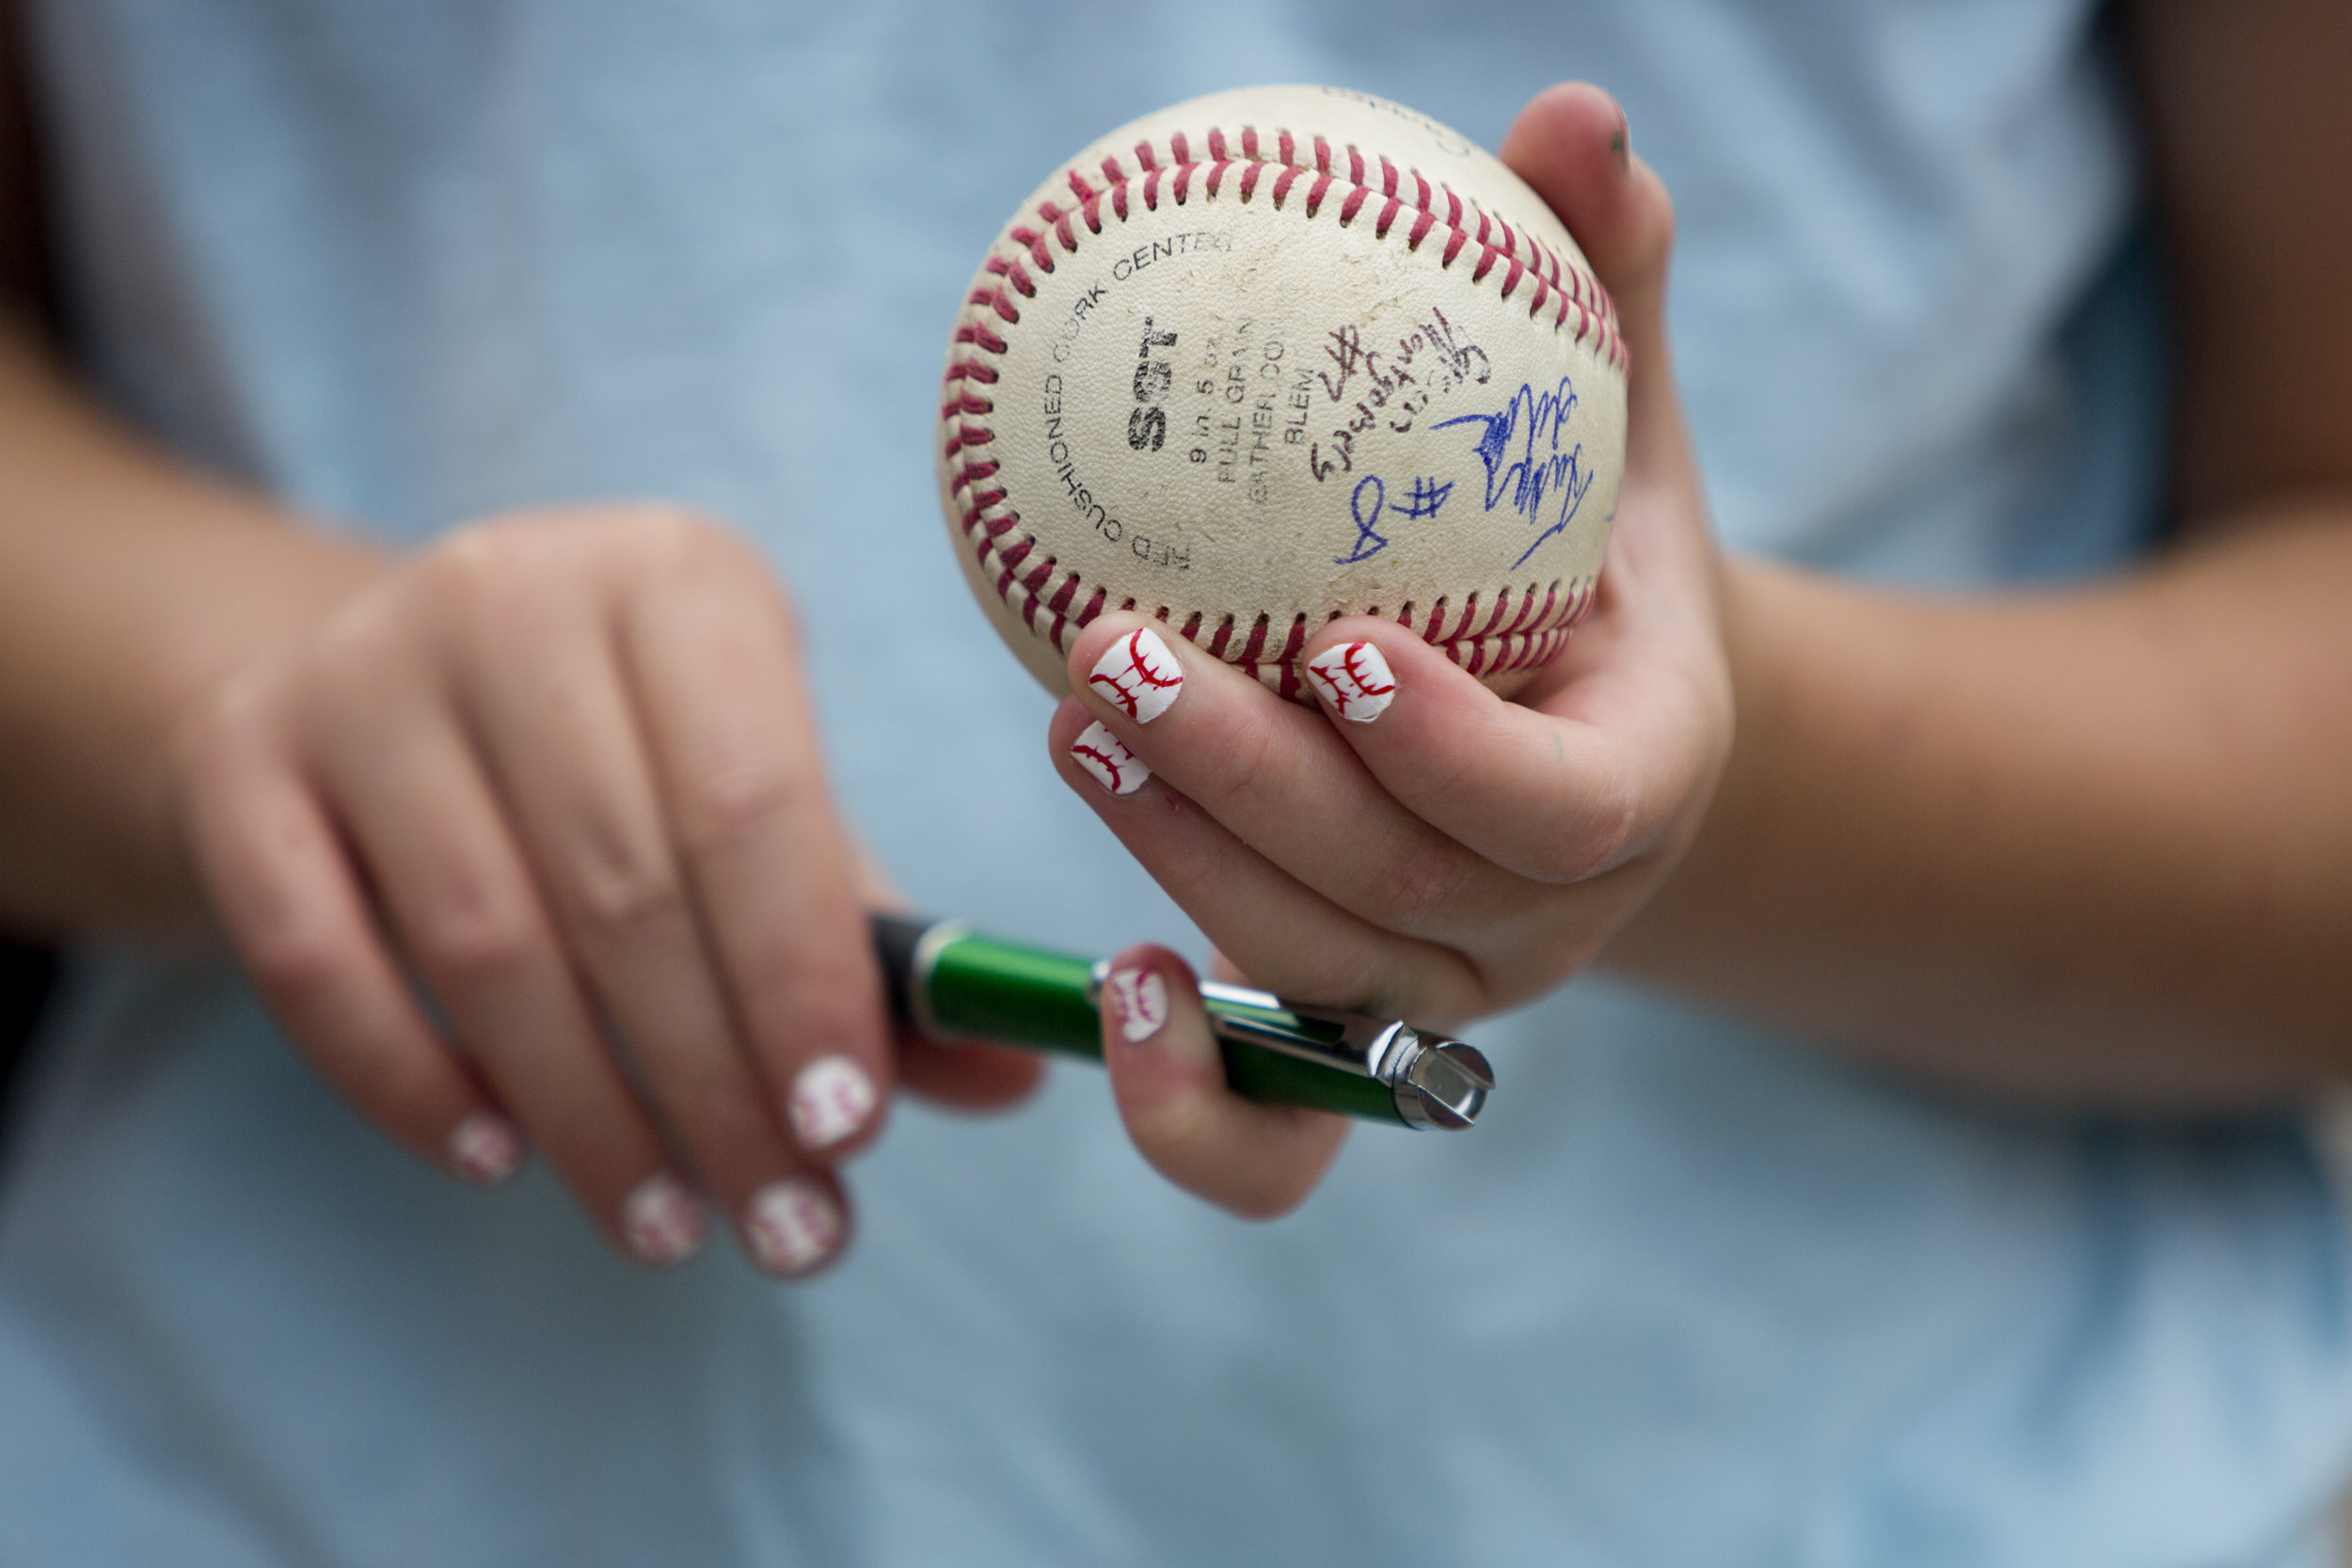 Ellie Bardwell of Huntingburg, 11, got her nails painted like baseballs at a salon before the Southridge High School send-off to the state final game at League Stadium in Huntingburg, Ind. on Friday, June 15, 2018. Bardwell, the daughter of athletic director Brett Bardwell, collected Raider signatures on her baseball.